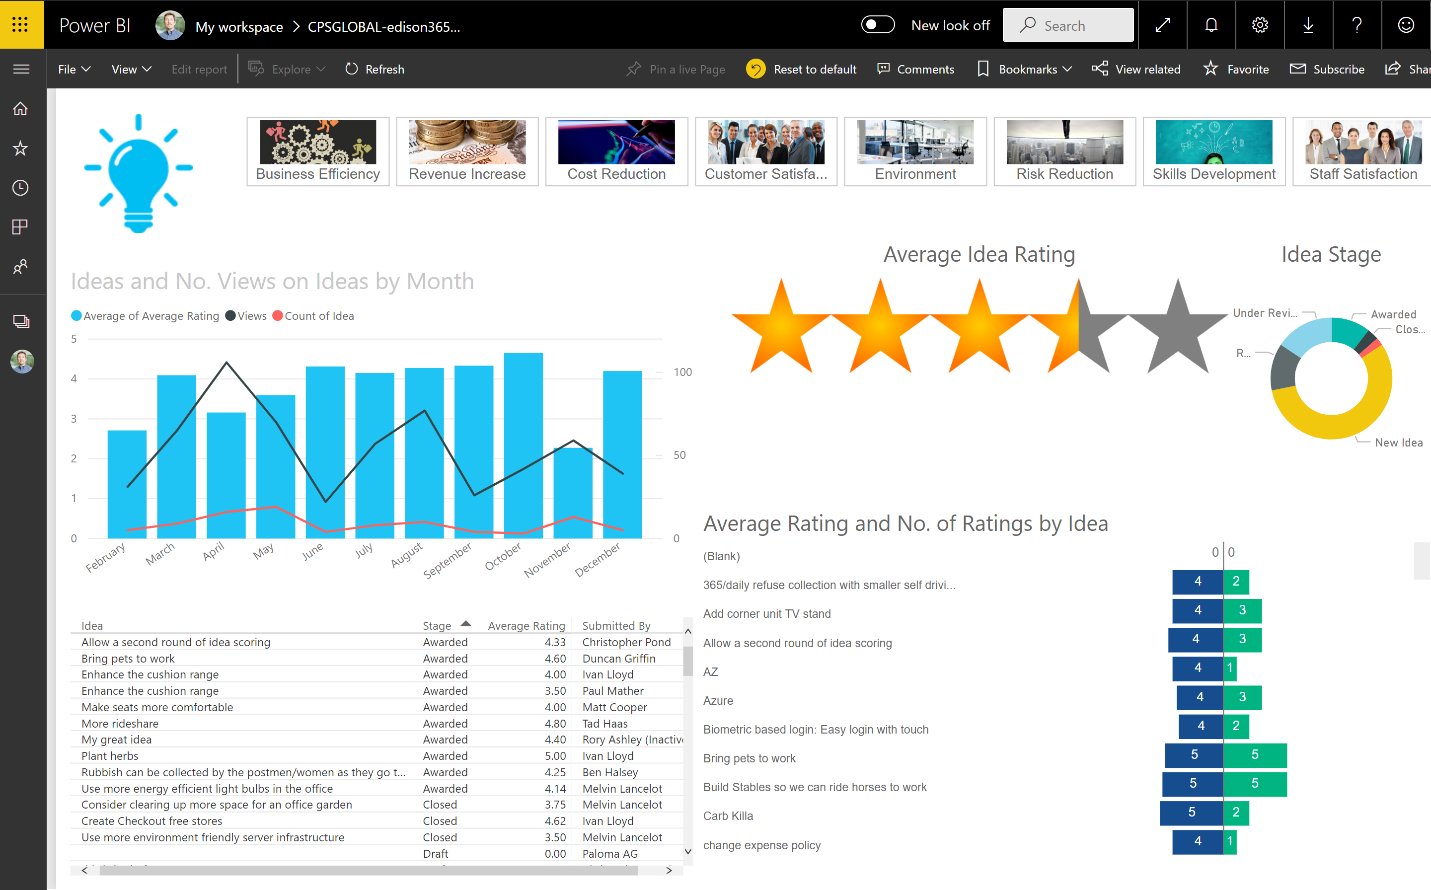 edison365ideas Power BI Reports